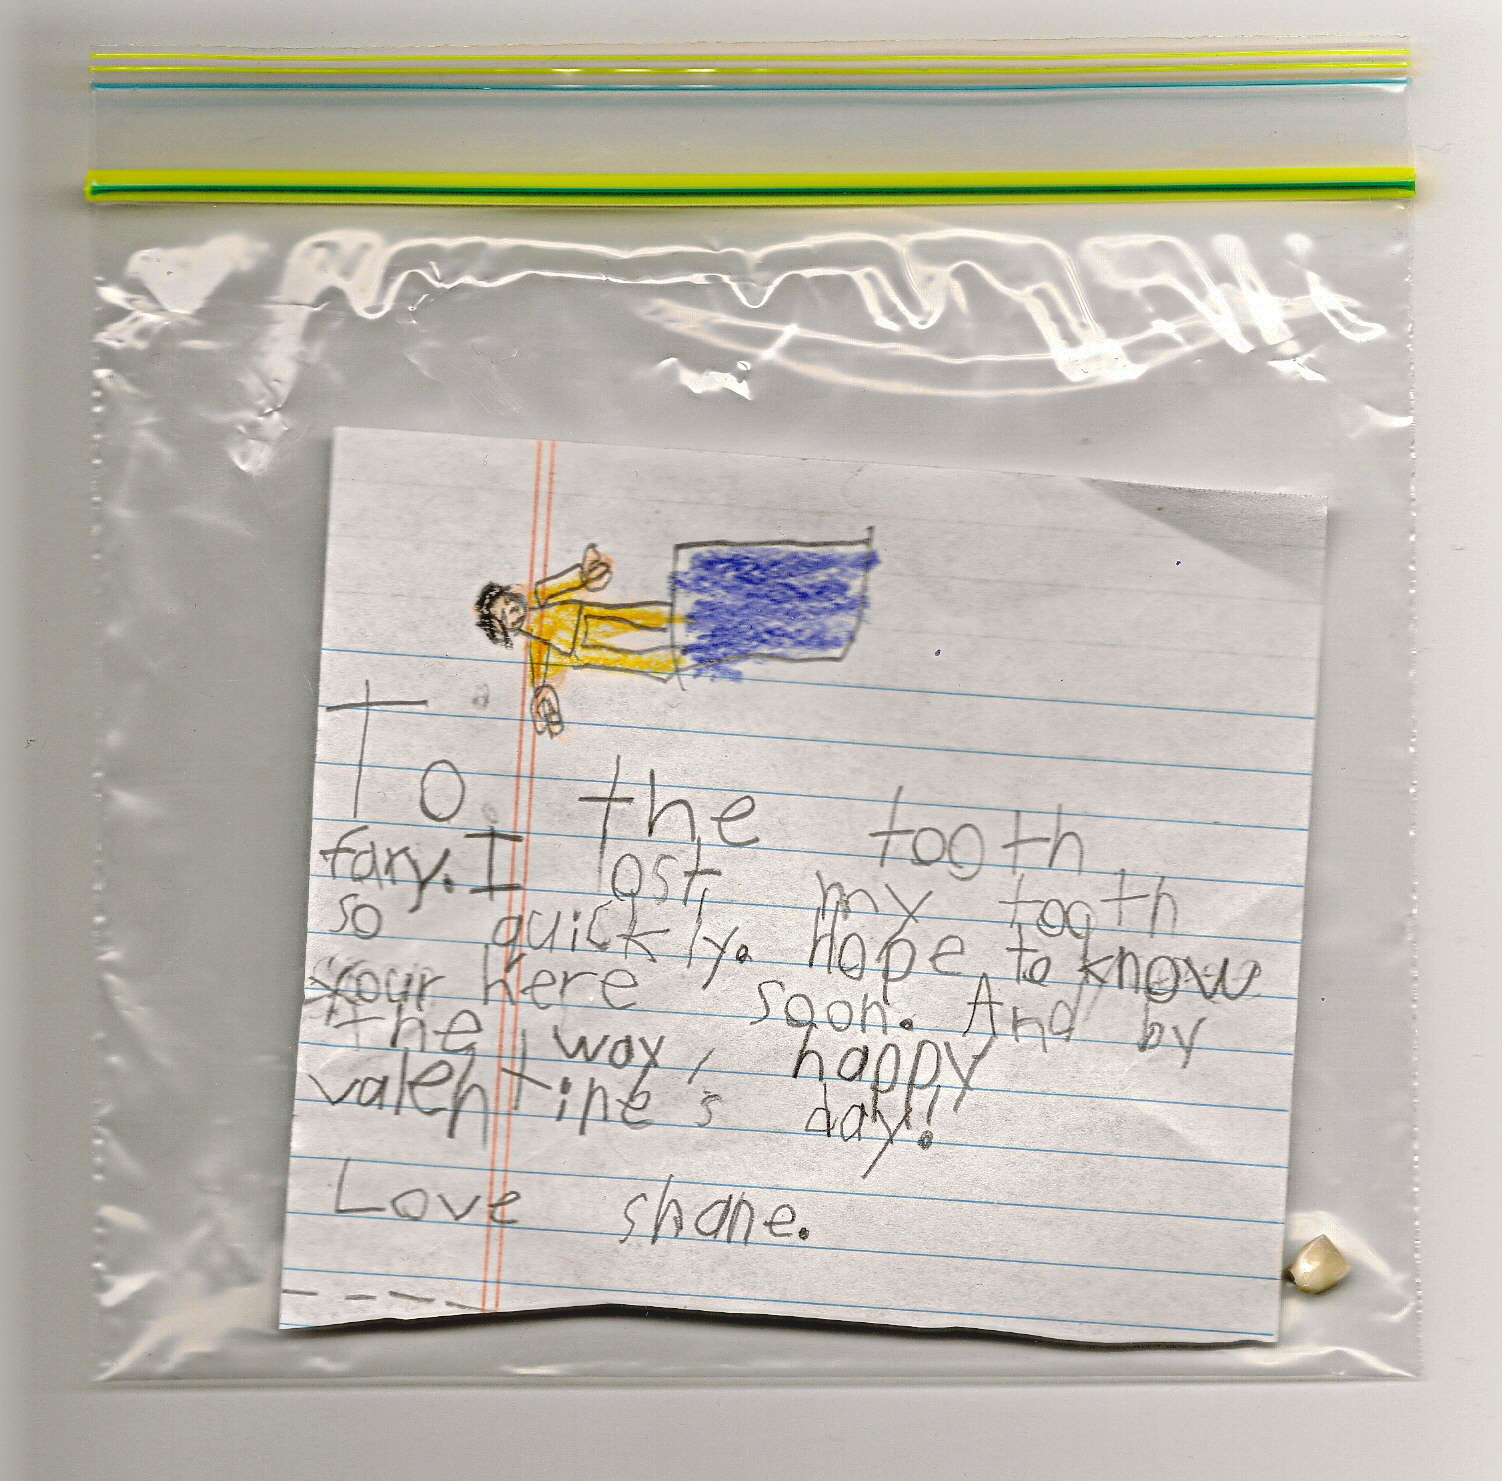 Shane's letter to the Tooth Fairy